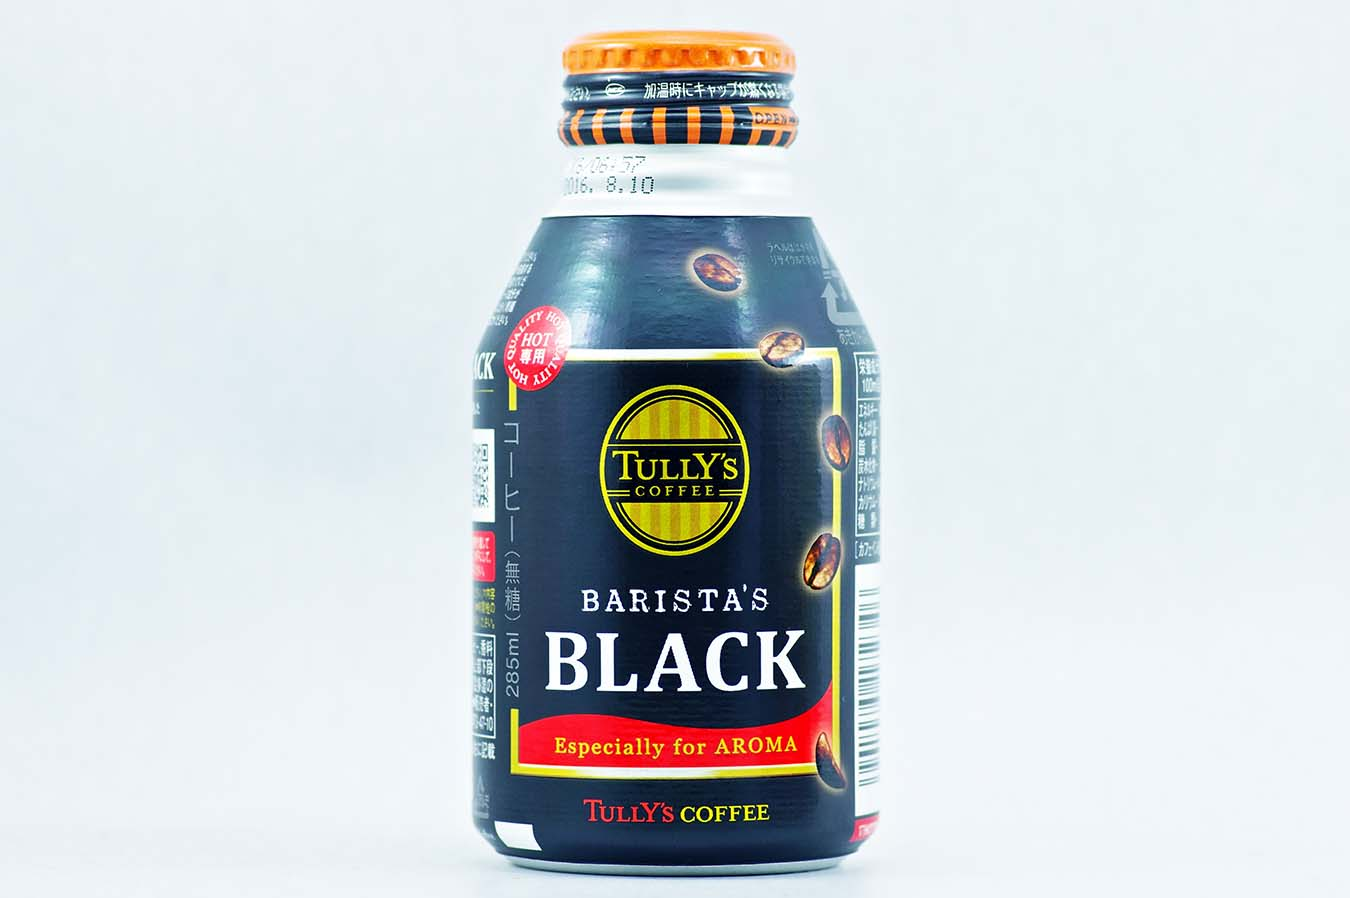 TULLY'S COFFEE BARISTA'S BLACK(ホット専用) 2015年9月